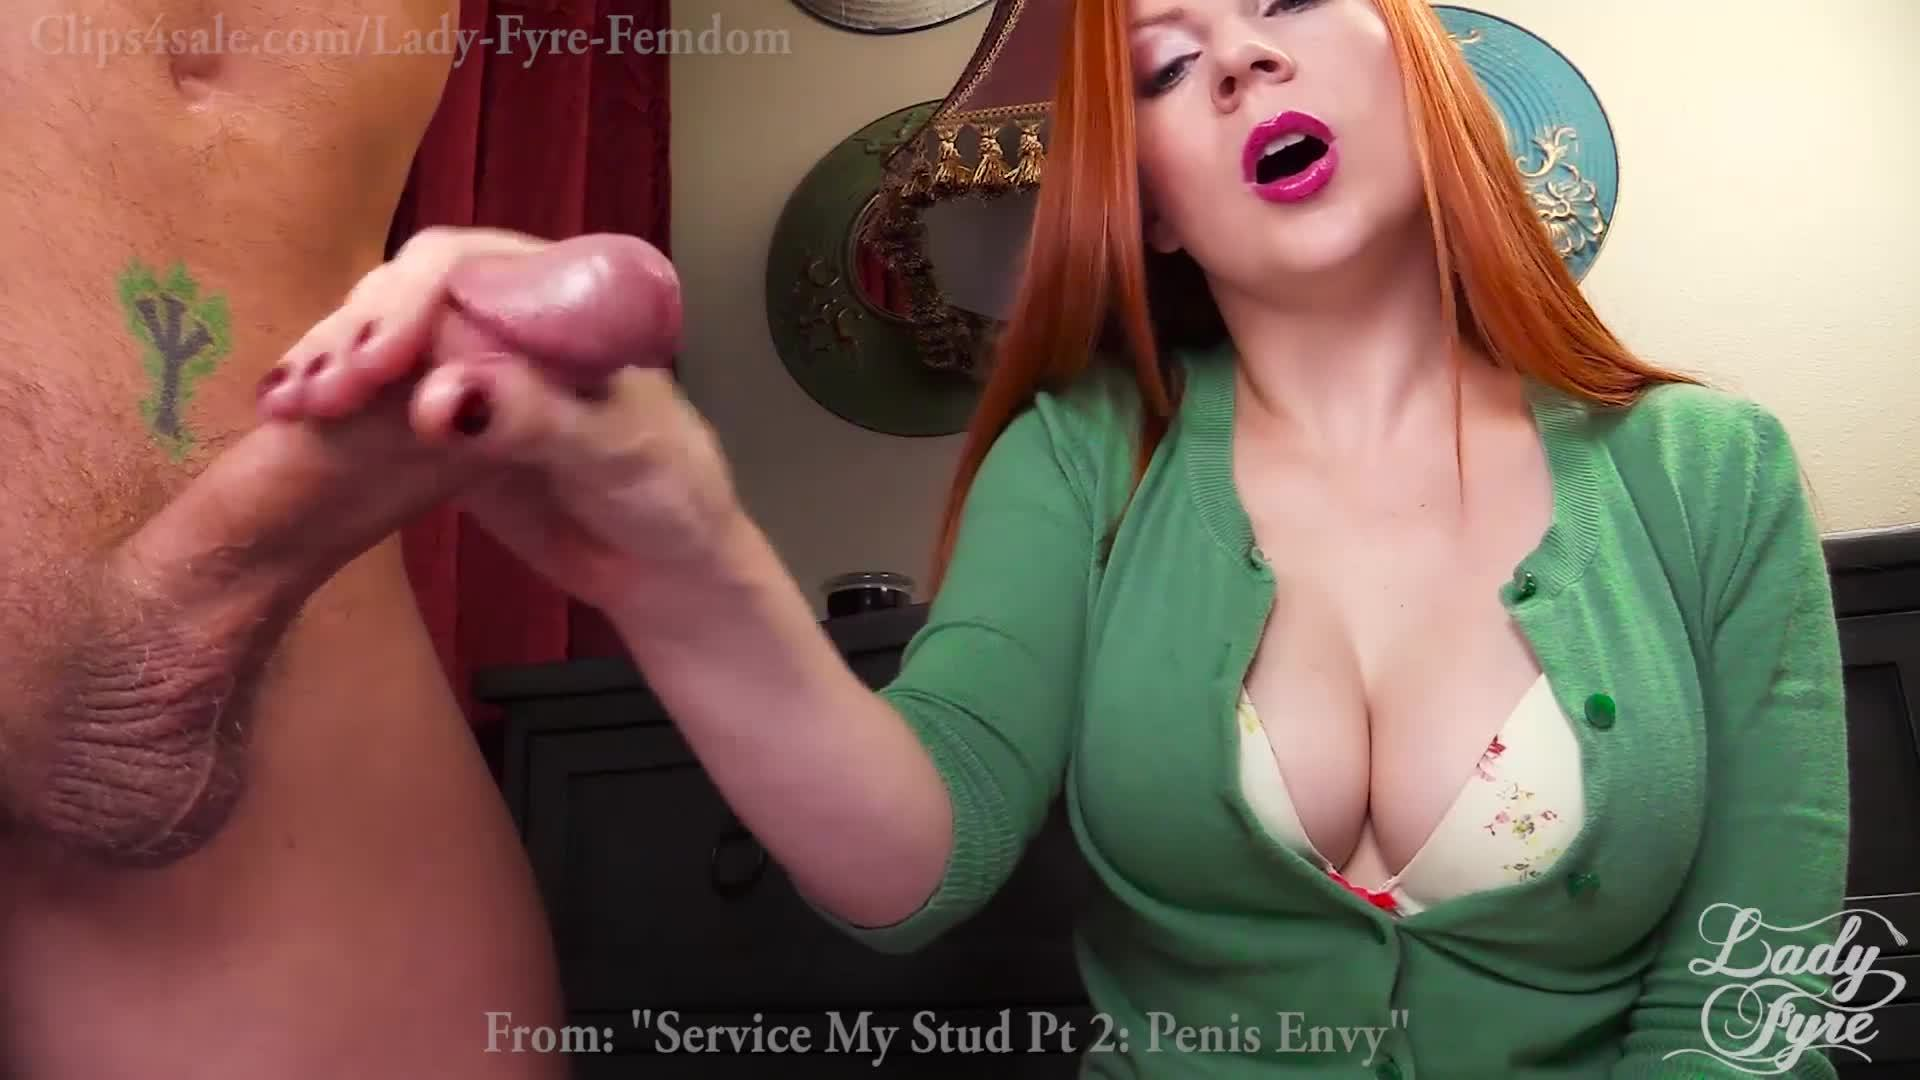 Super Faggot The ed Awaken by Lady Fyre